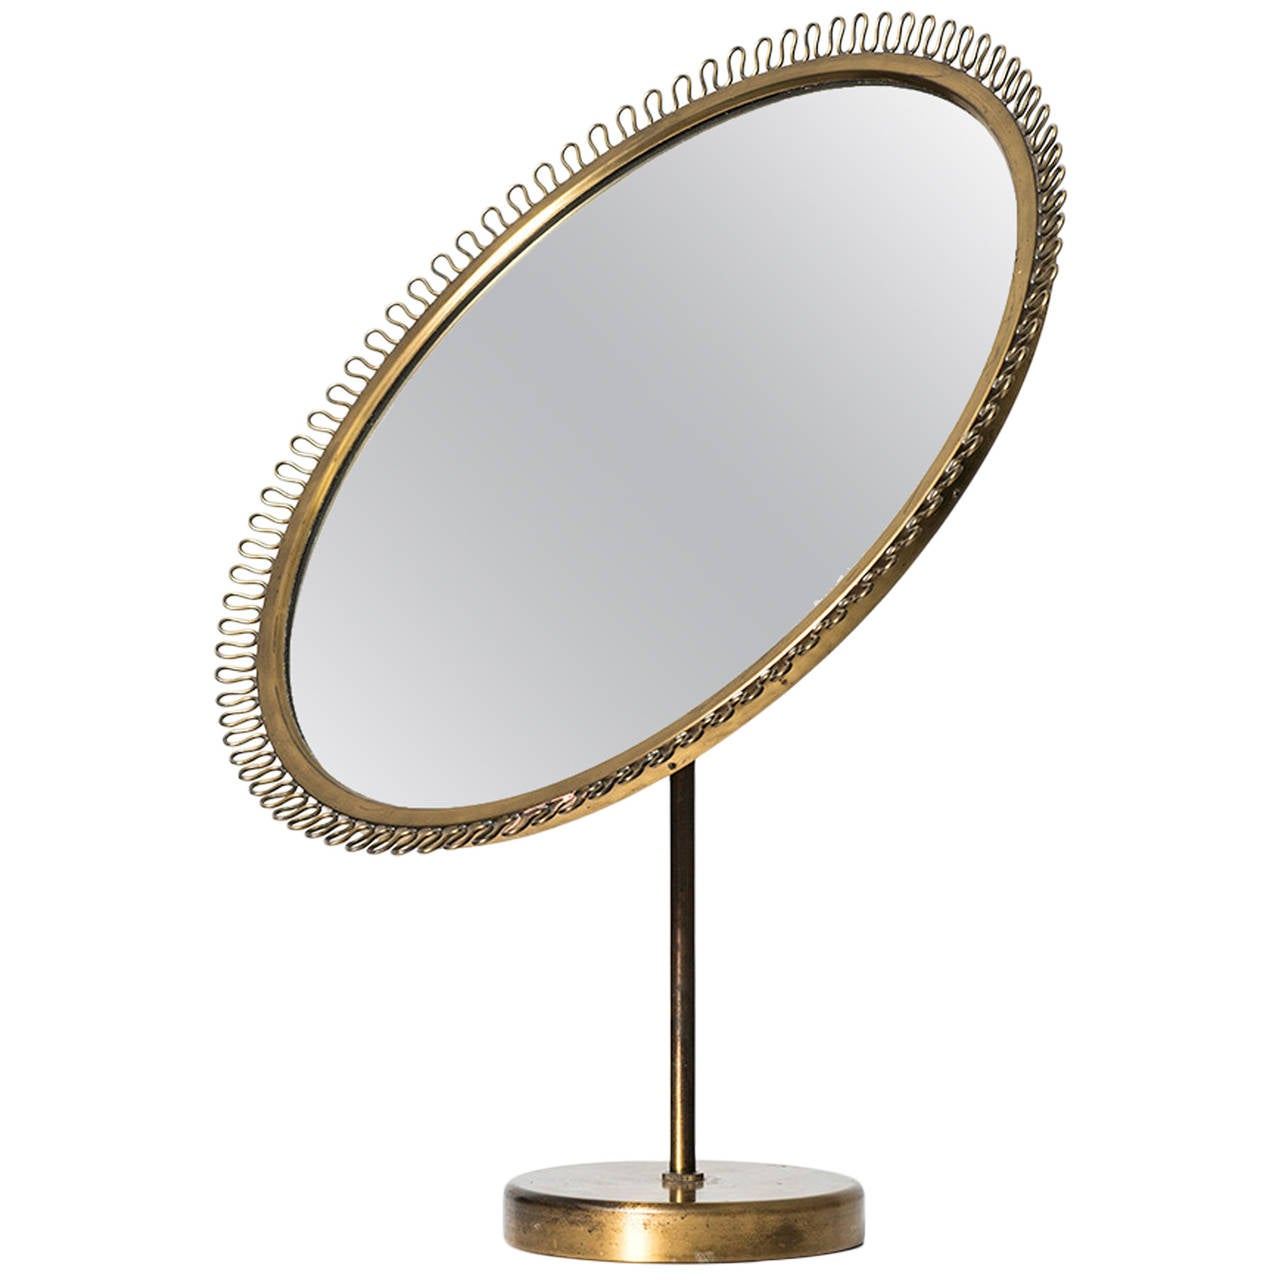 Josef Frank Table Mirror Produced by Svenskt Tenn in Sweden